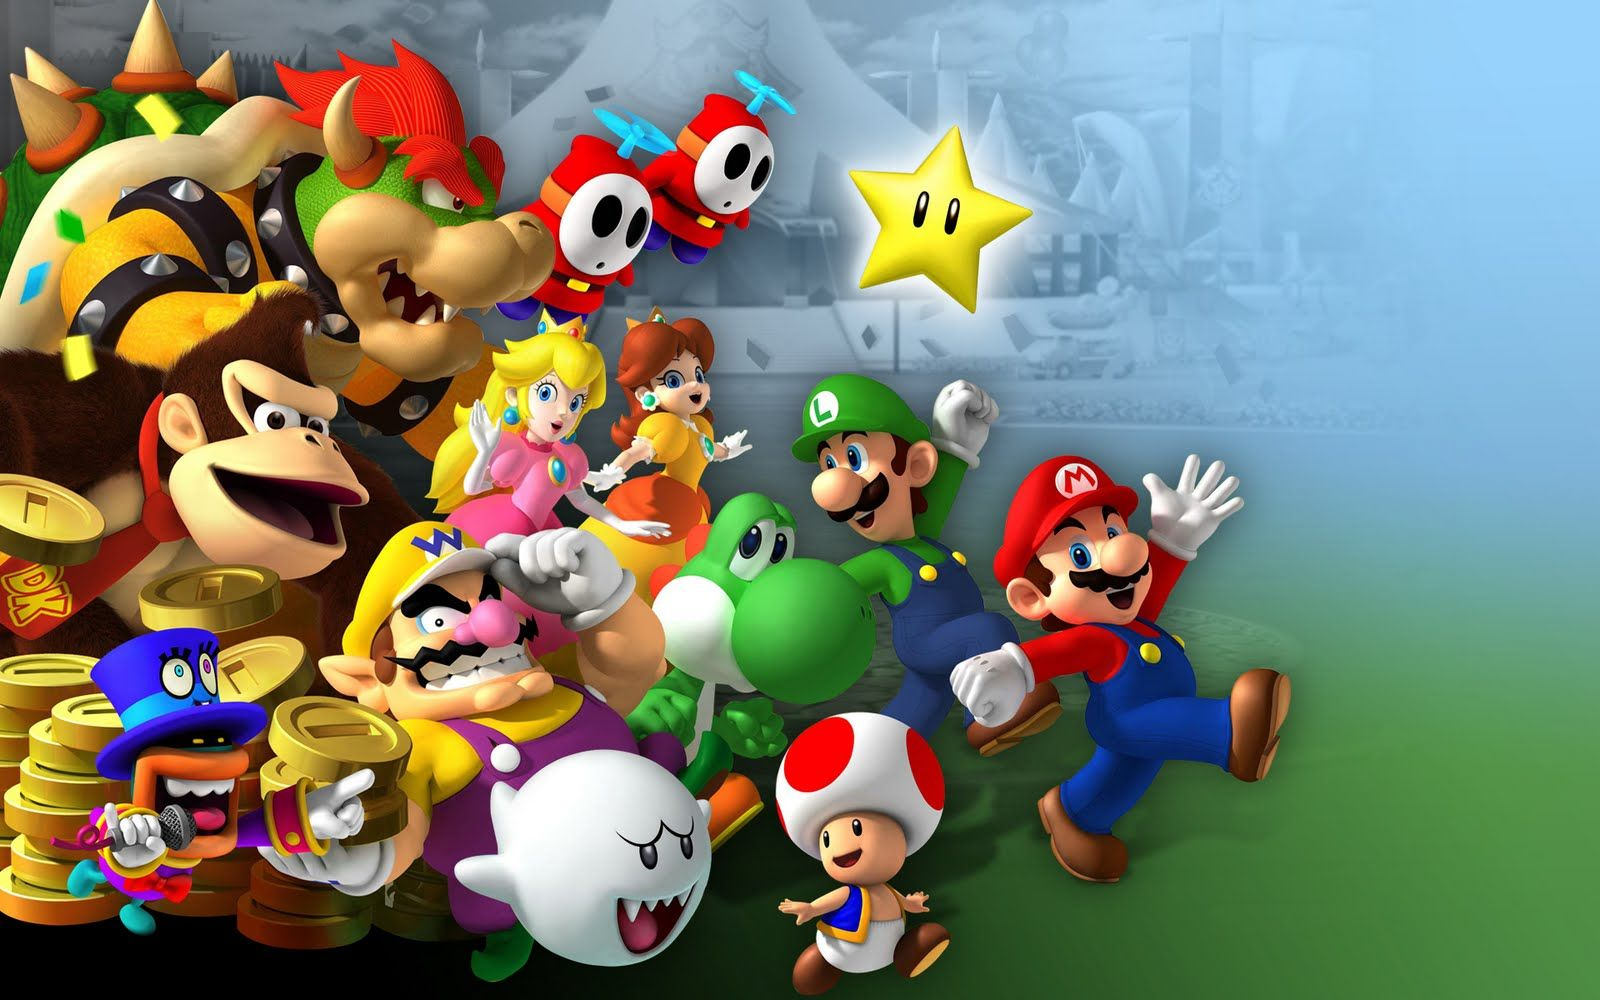 mario wallpaper http://www.thenewsin/games/anyone-can-create-the